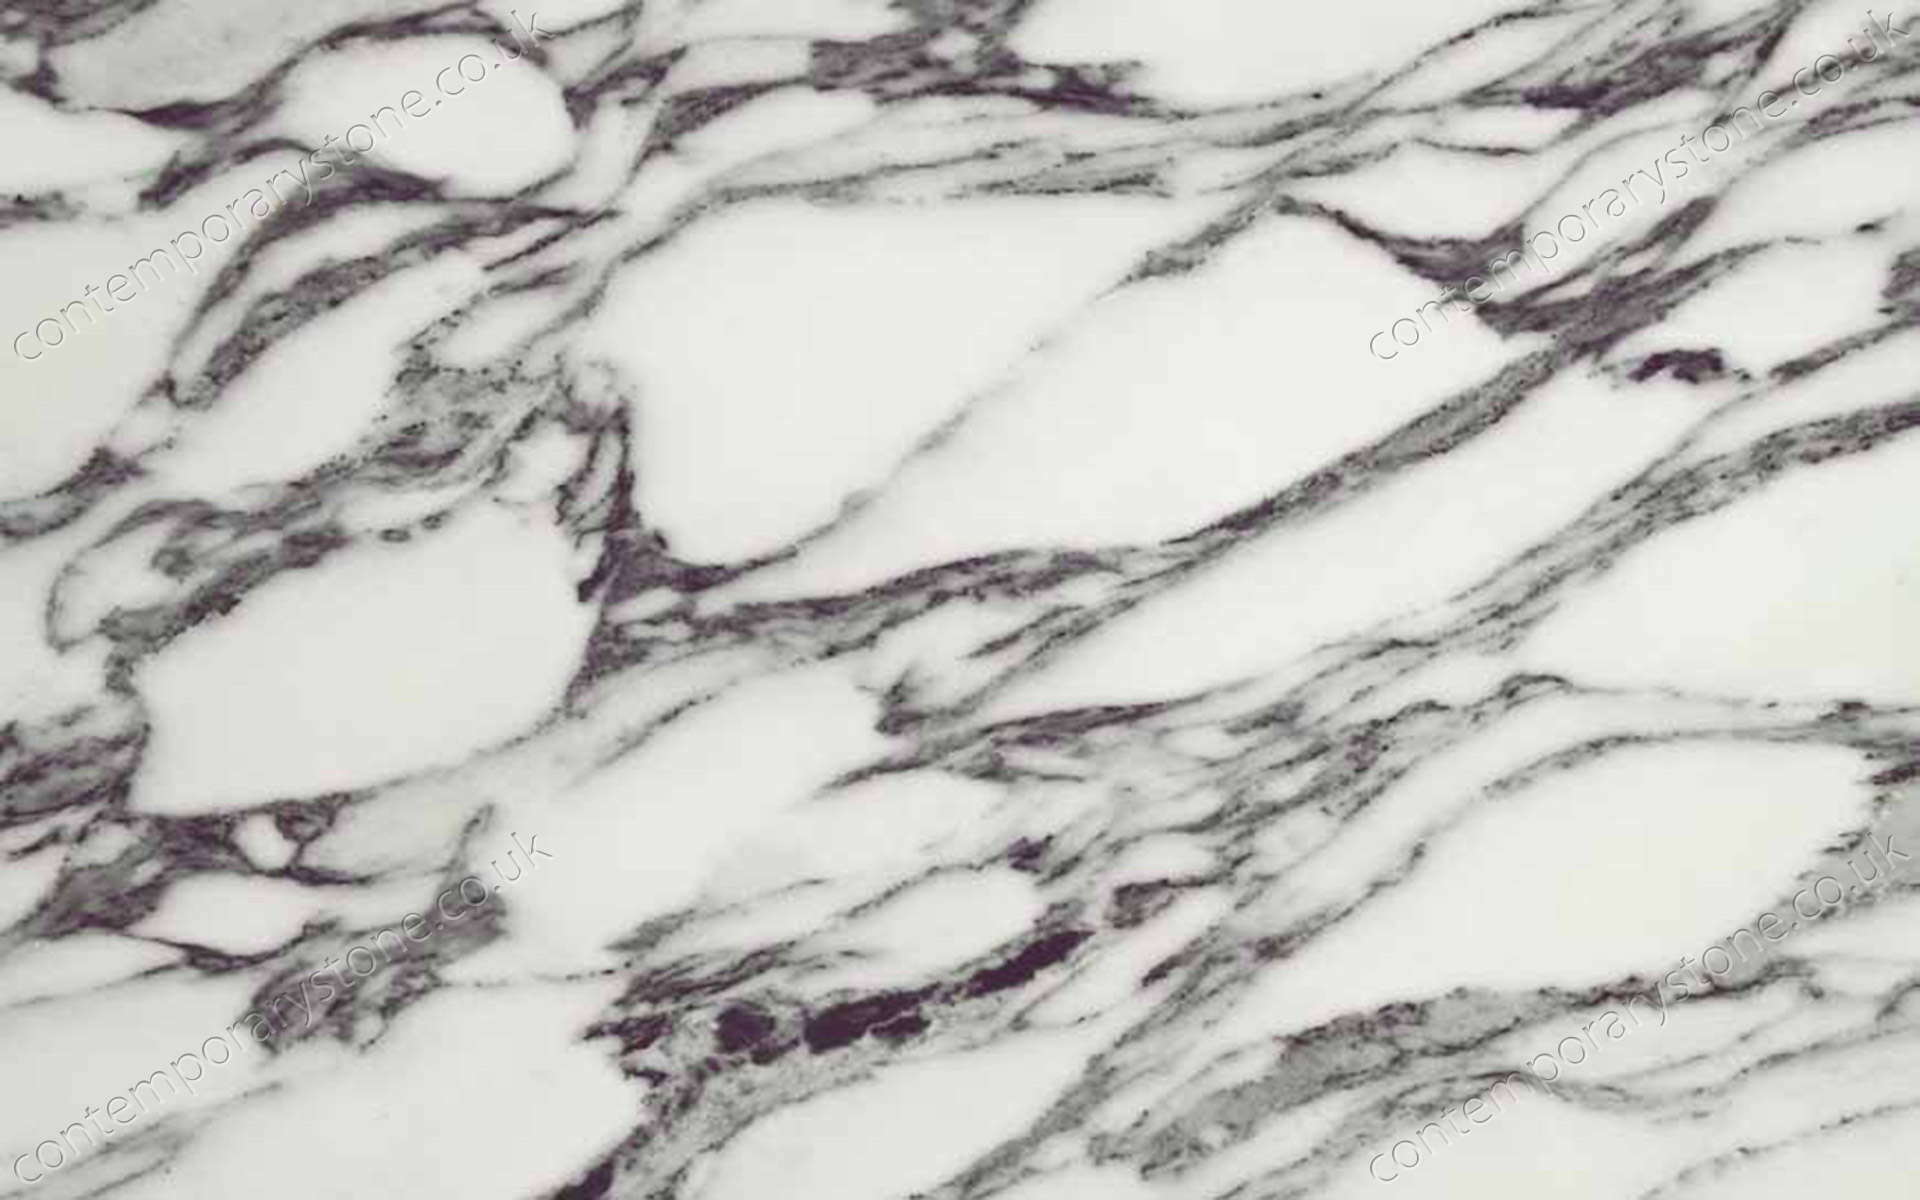 Arabescato Corchia marble close-up